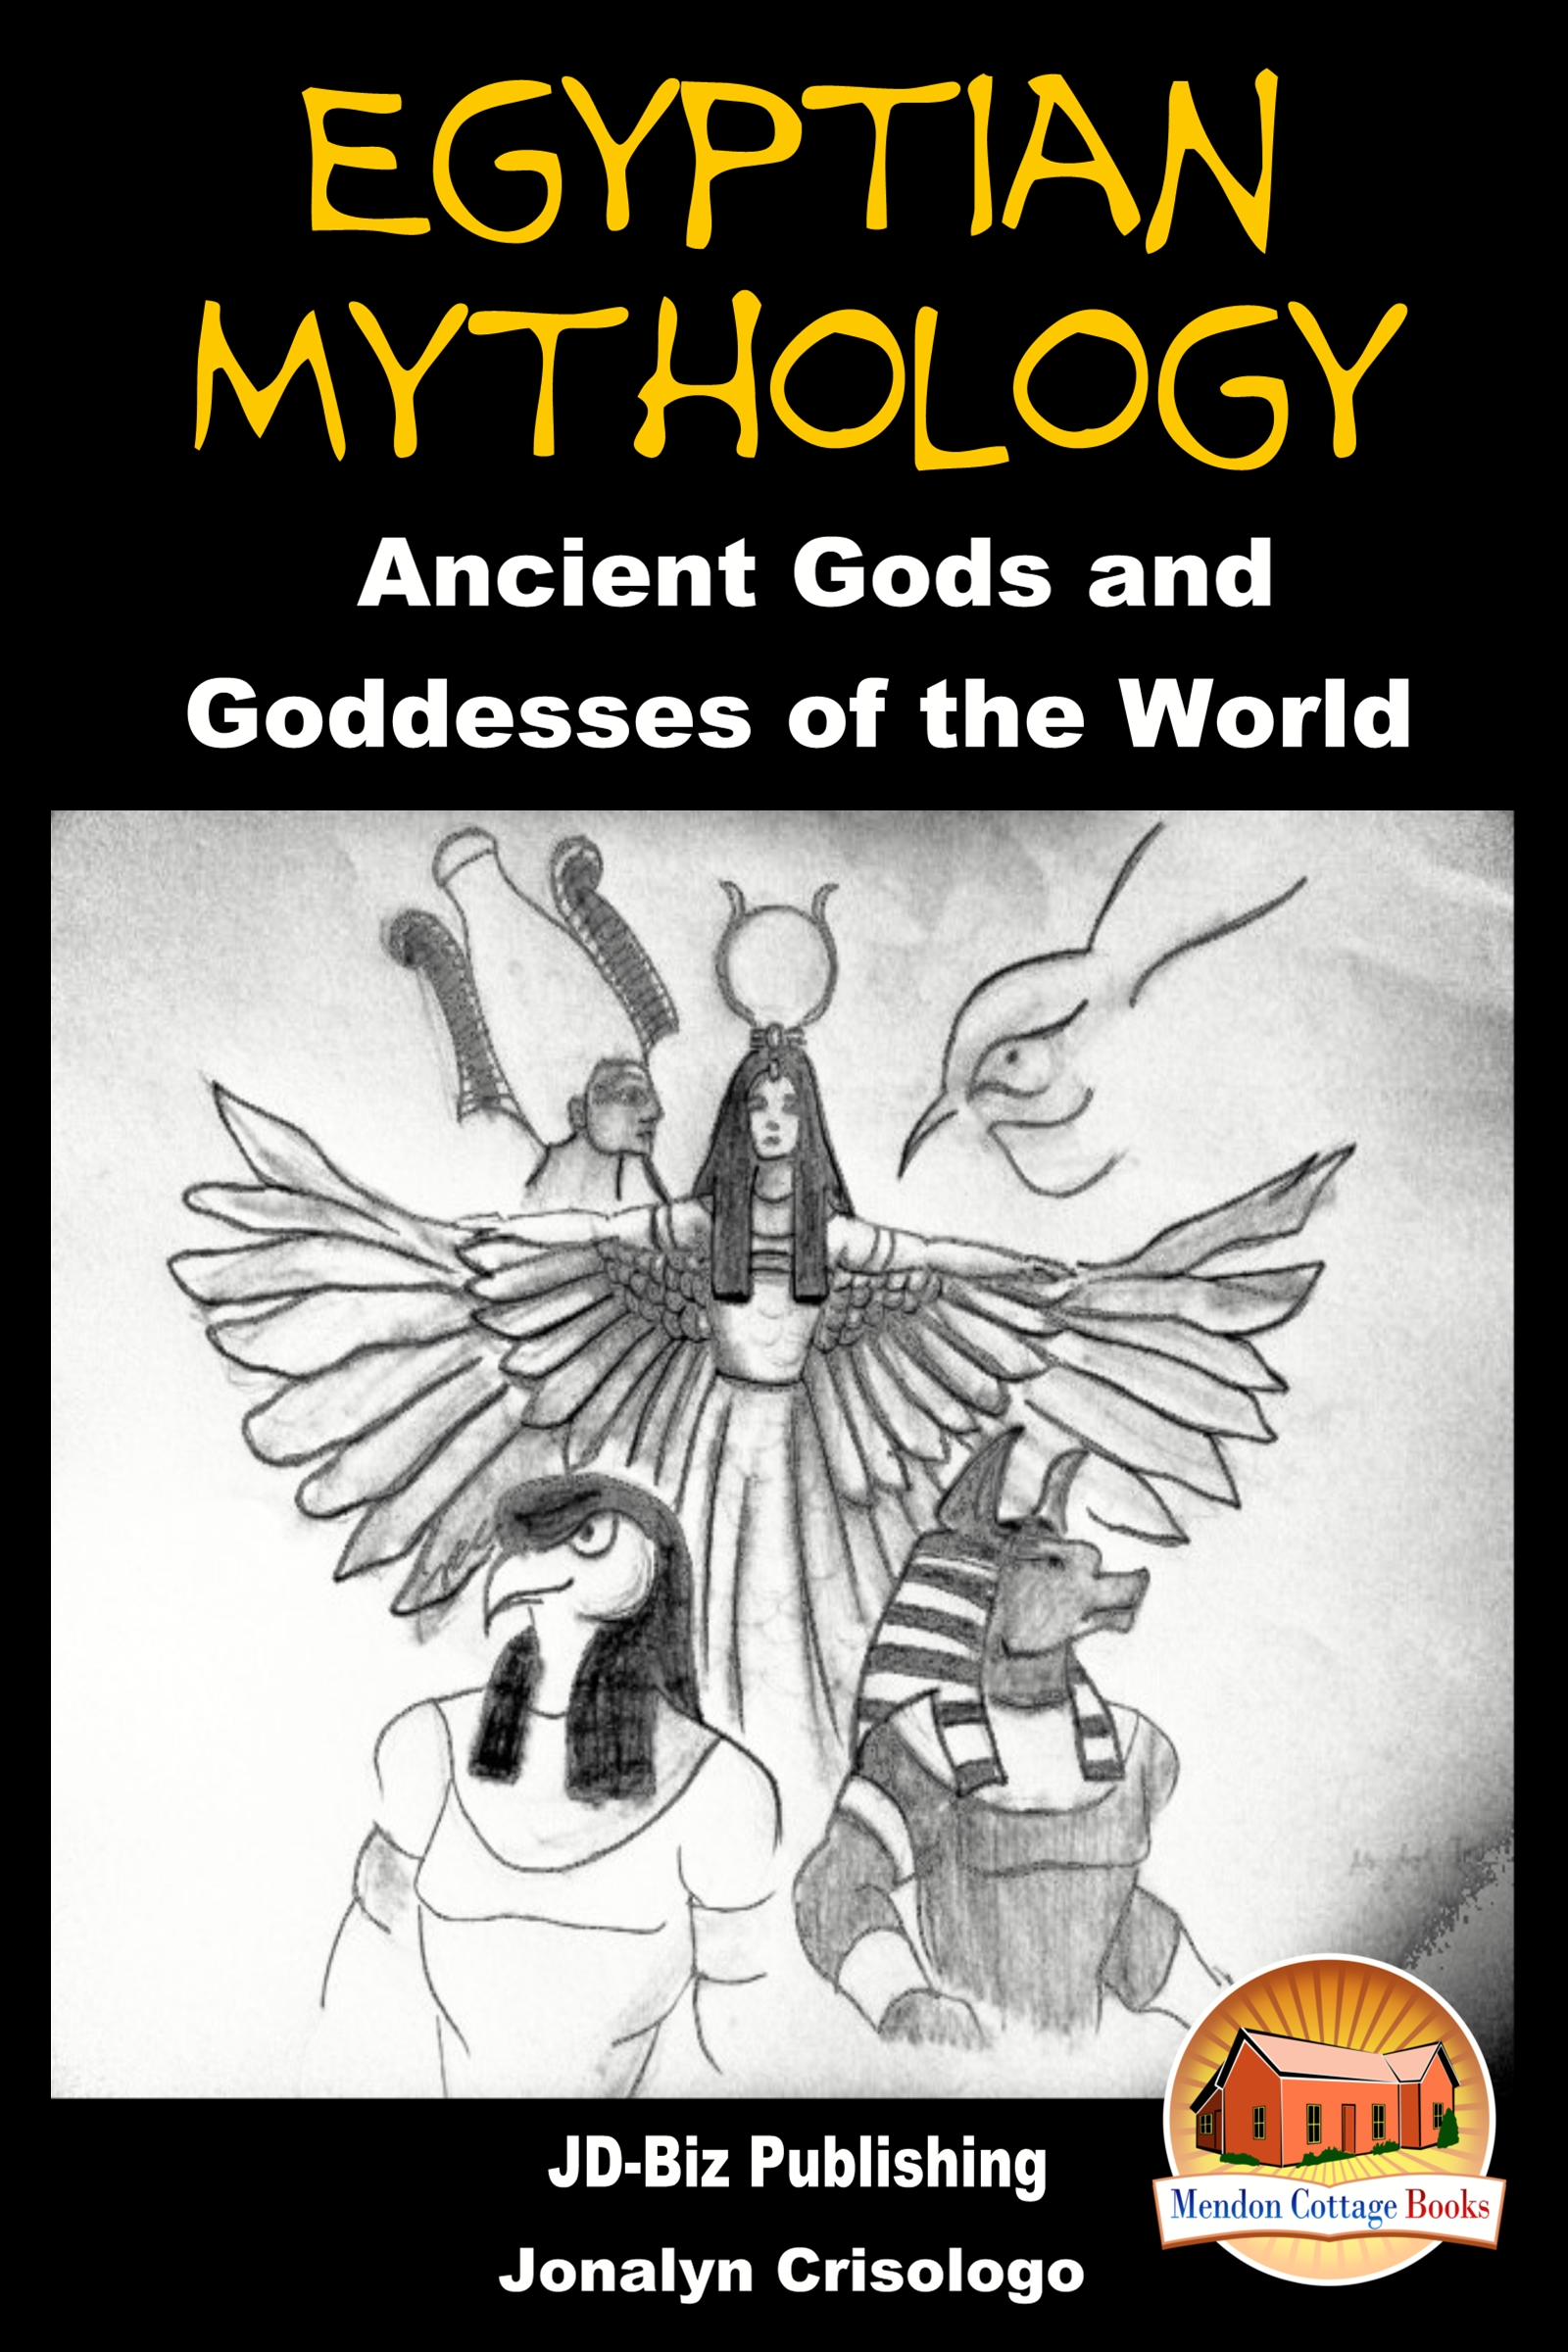 an introduction to the civilization and mythology of egypt